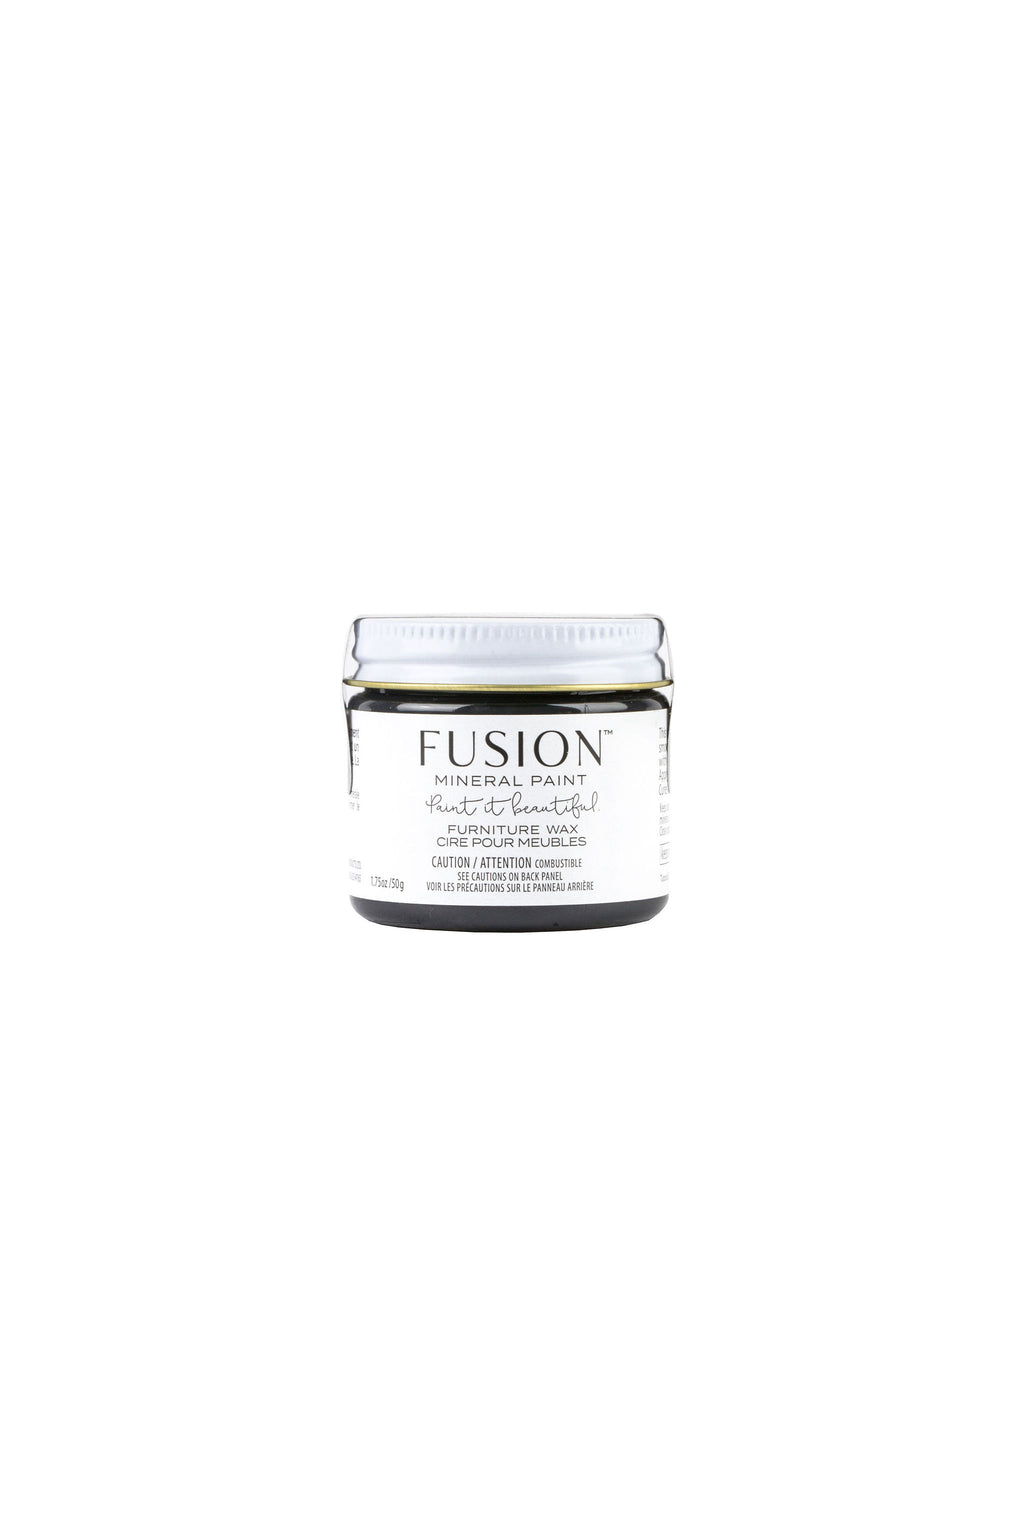 Fusion Mineral Paint Aging Wax 50 g